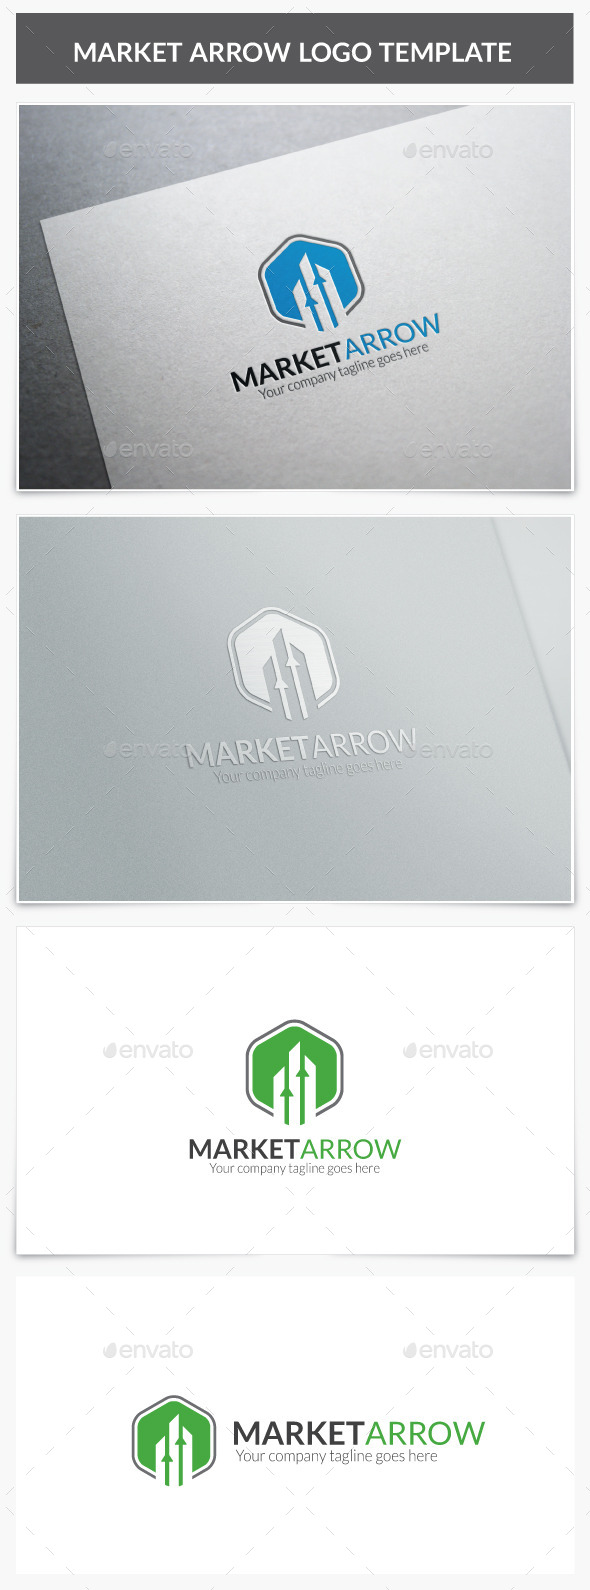 Market Arrow Logo - Vector Abstract